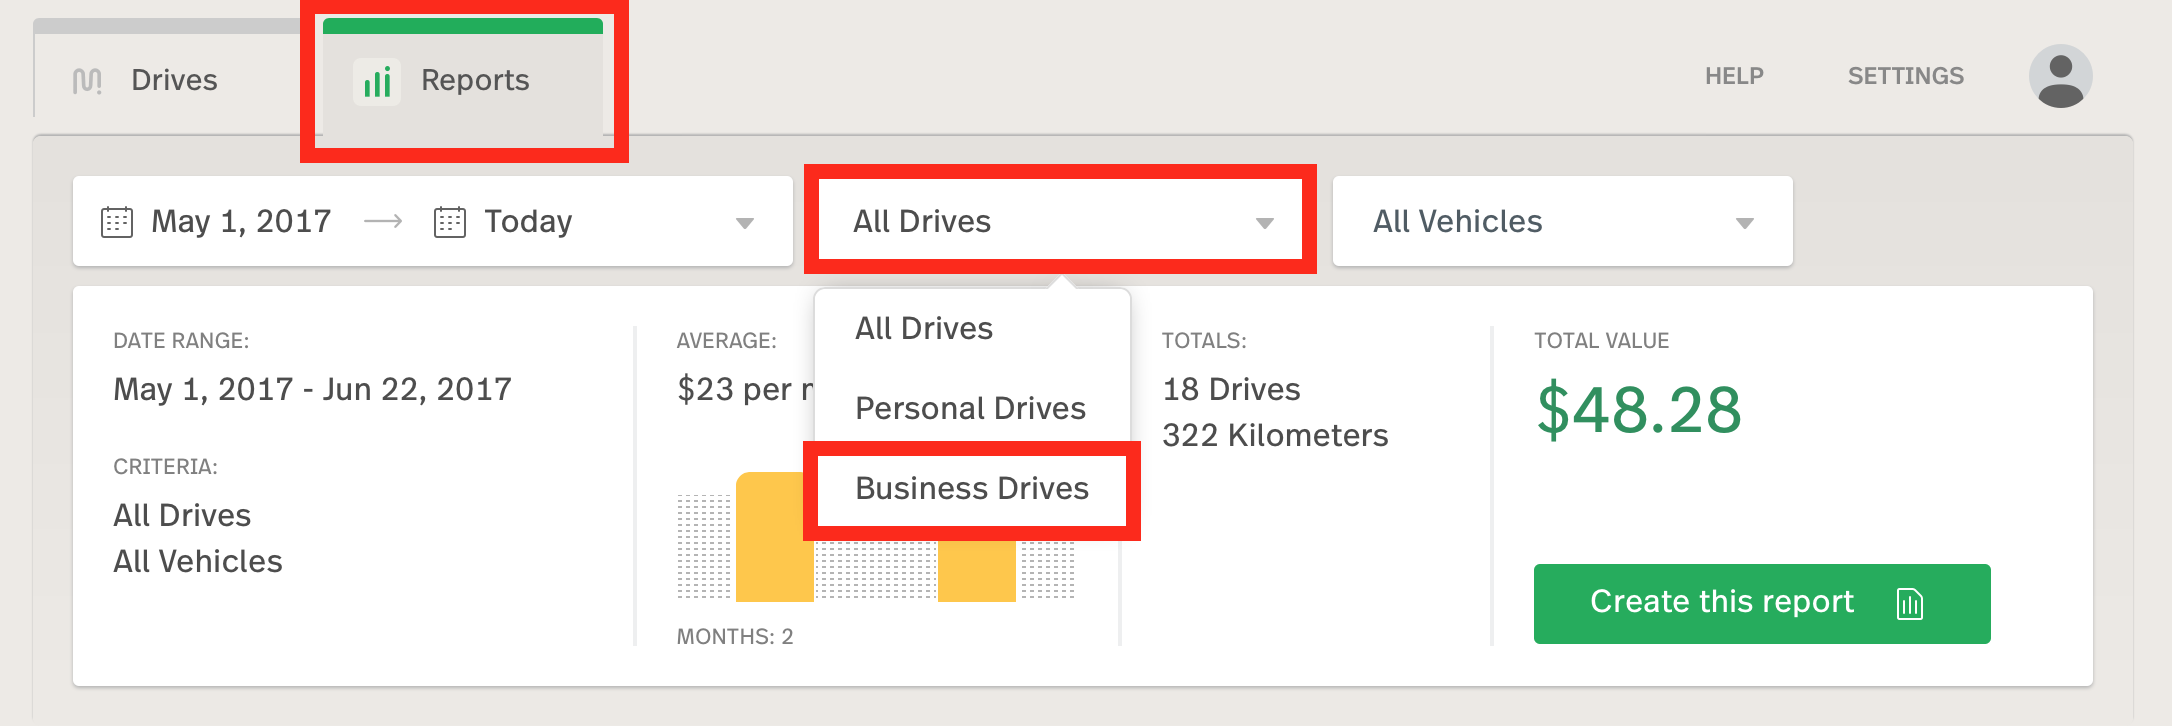 This image shows the reports tab, highlighting the business drives filter.